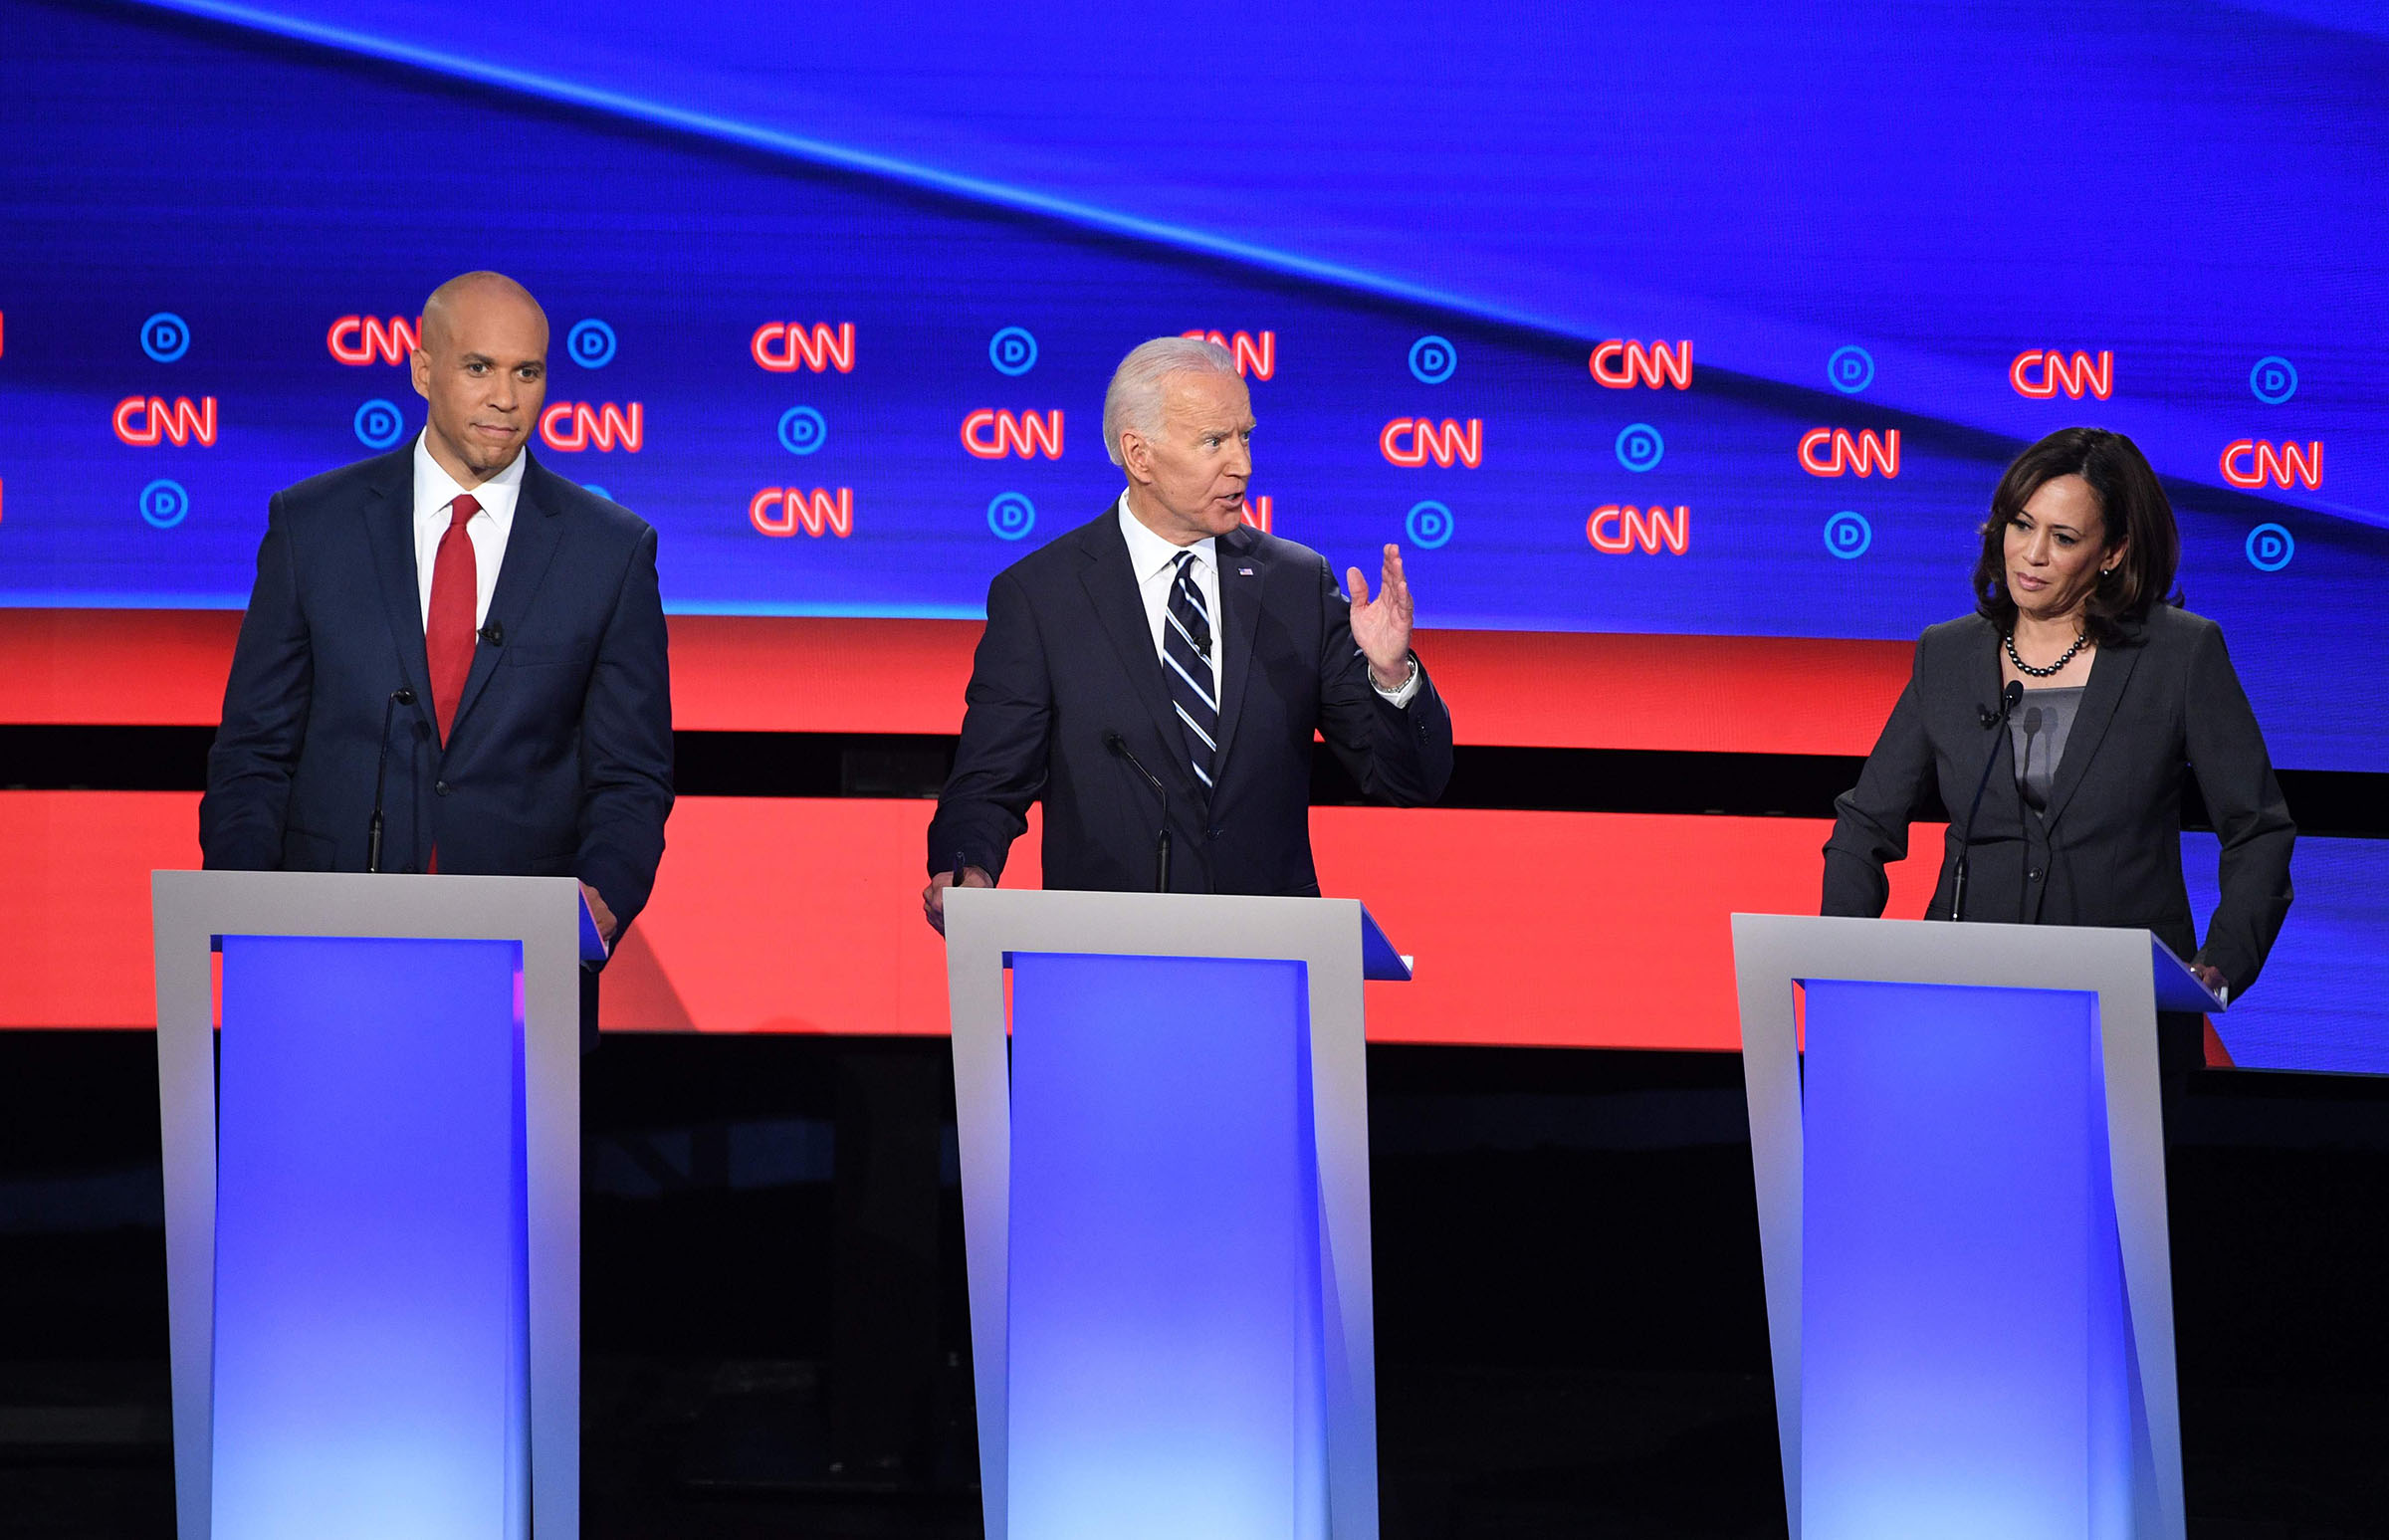 Democratic presidential hopefuls (fromL) US Senator from New Jersey Cory Booker looks on as former Vice President Joe Biden gestures next to US Senator from California Kamala Harris during the second round of the second Democratic primary debate of the 2020 presidential campaign season hosted by CNN at the Fox Theatre in Detroit, Michigan on July 31, 2019.